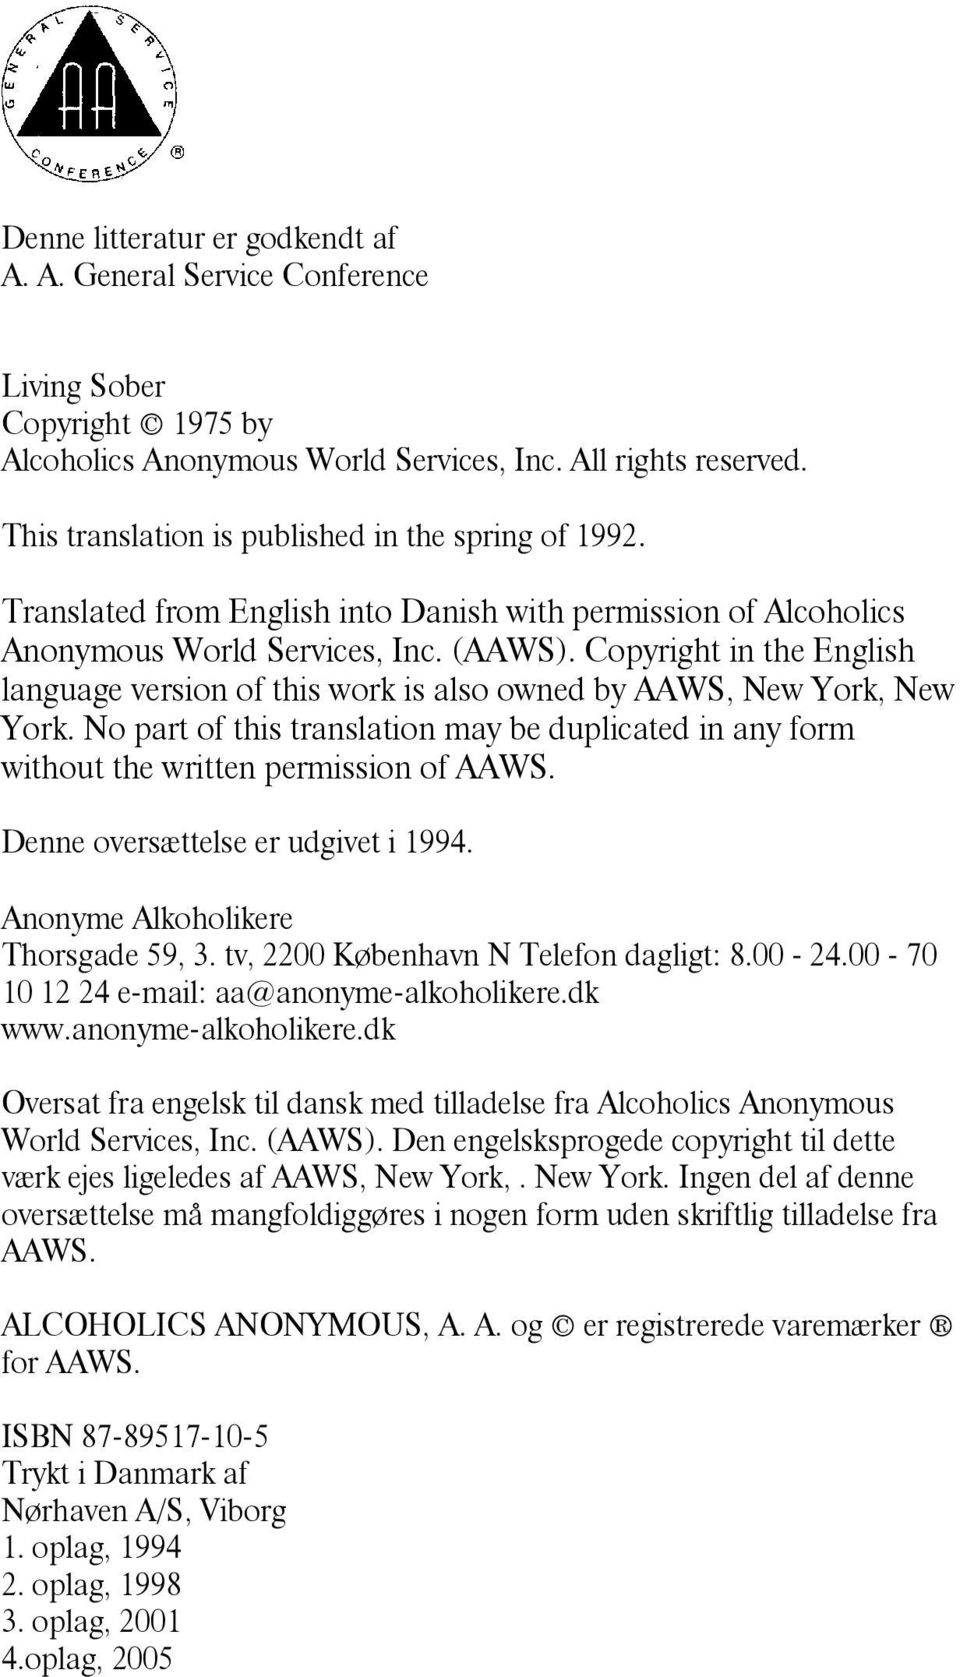 Copyright in the English language version of this work is also owned by AAWS, New York, New York. No part of this translation may be duplicated in any form without the written permission of AAWS.